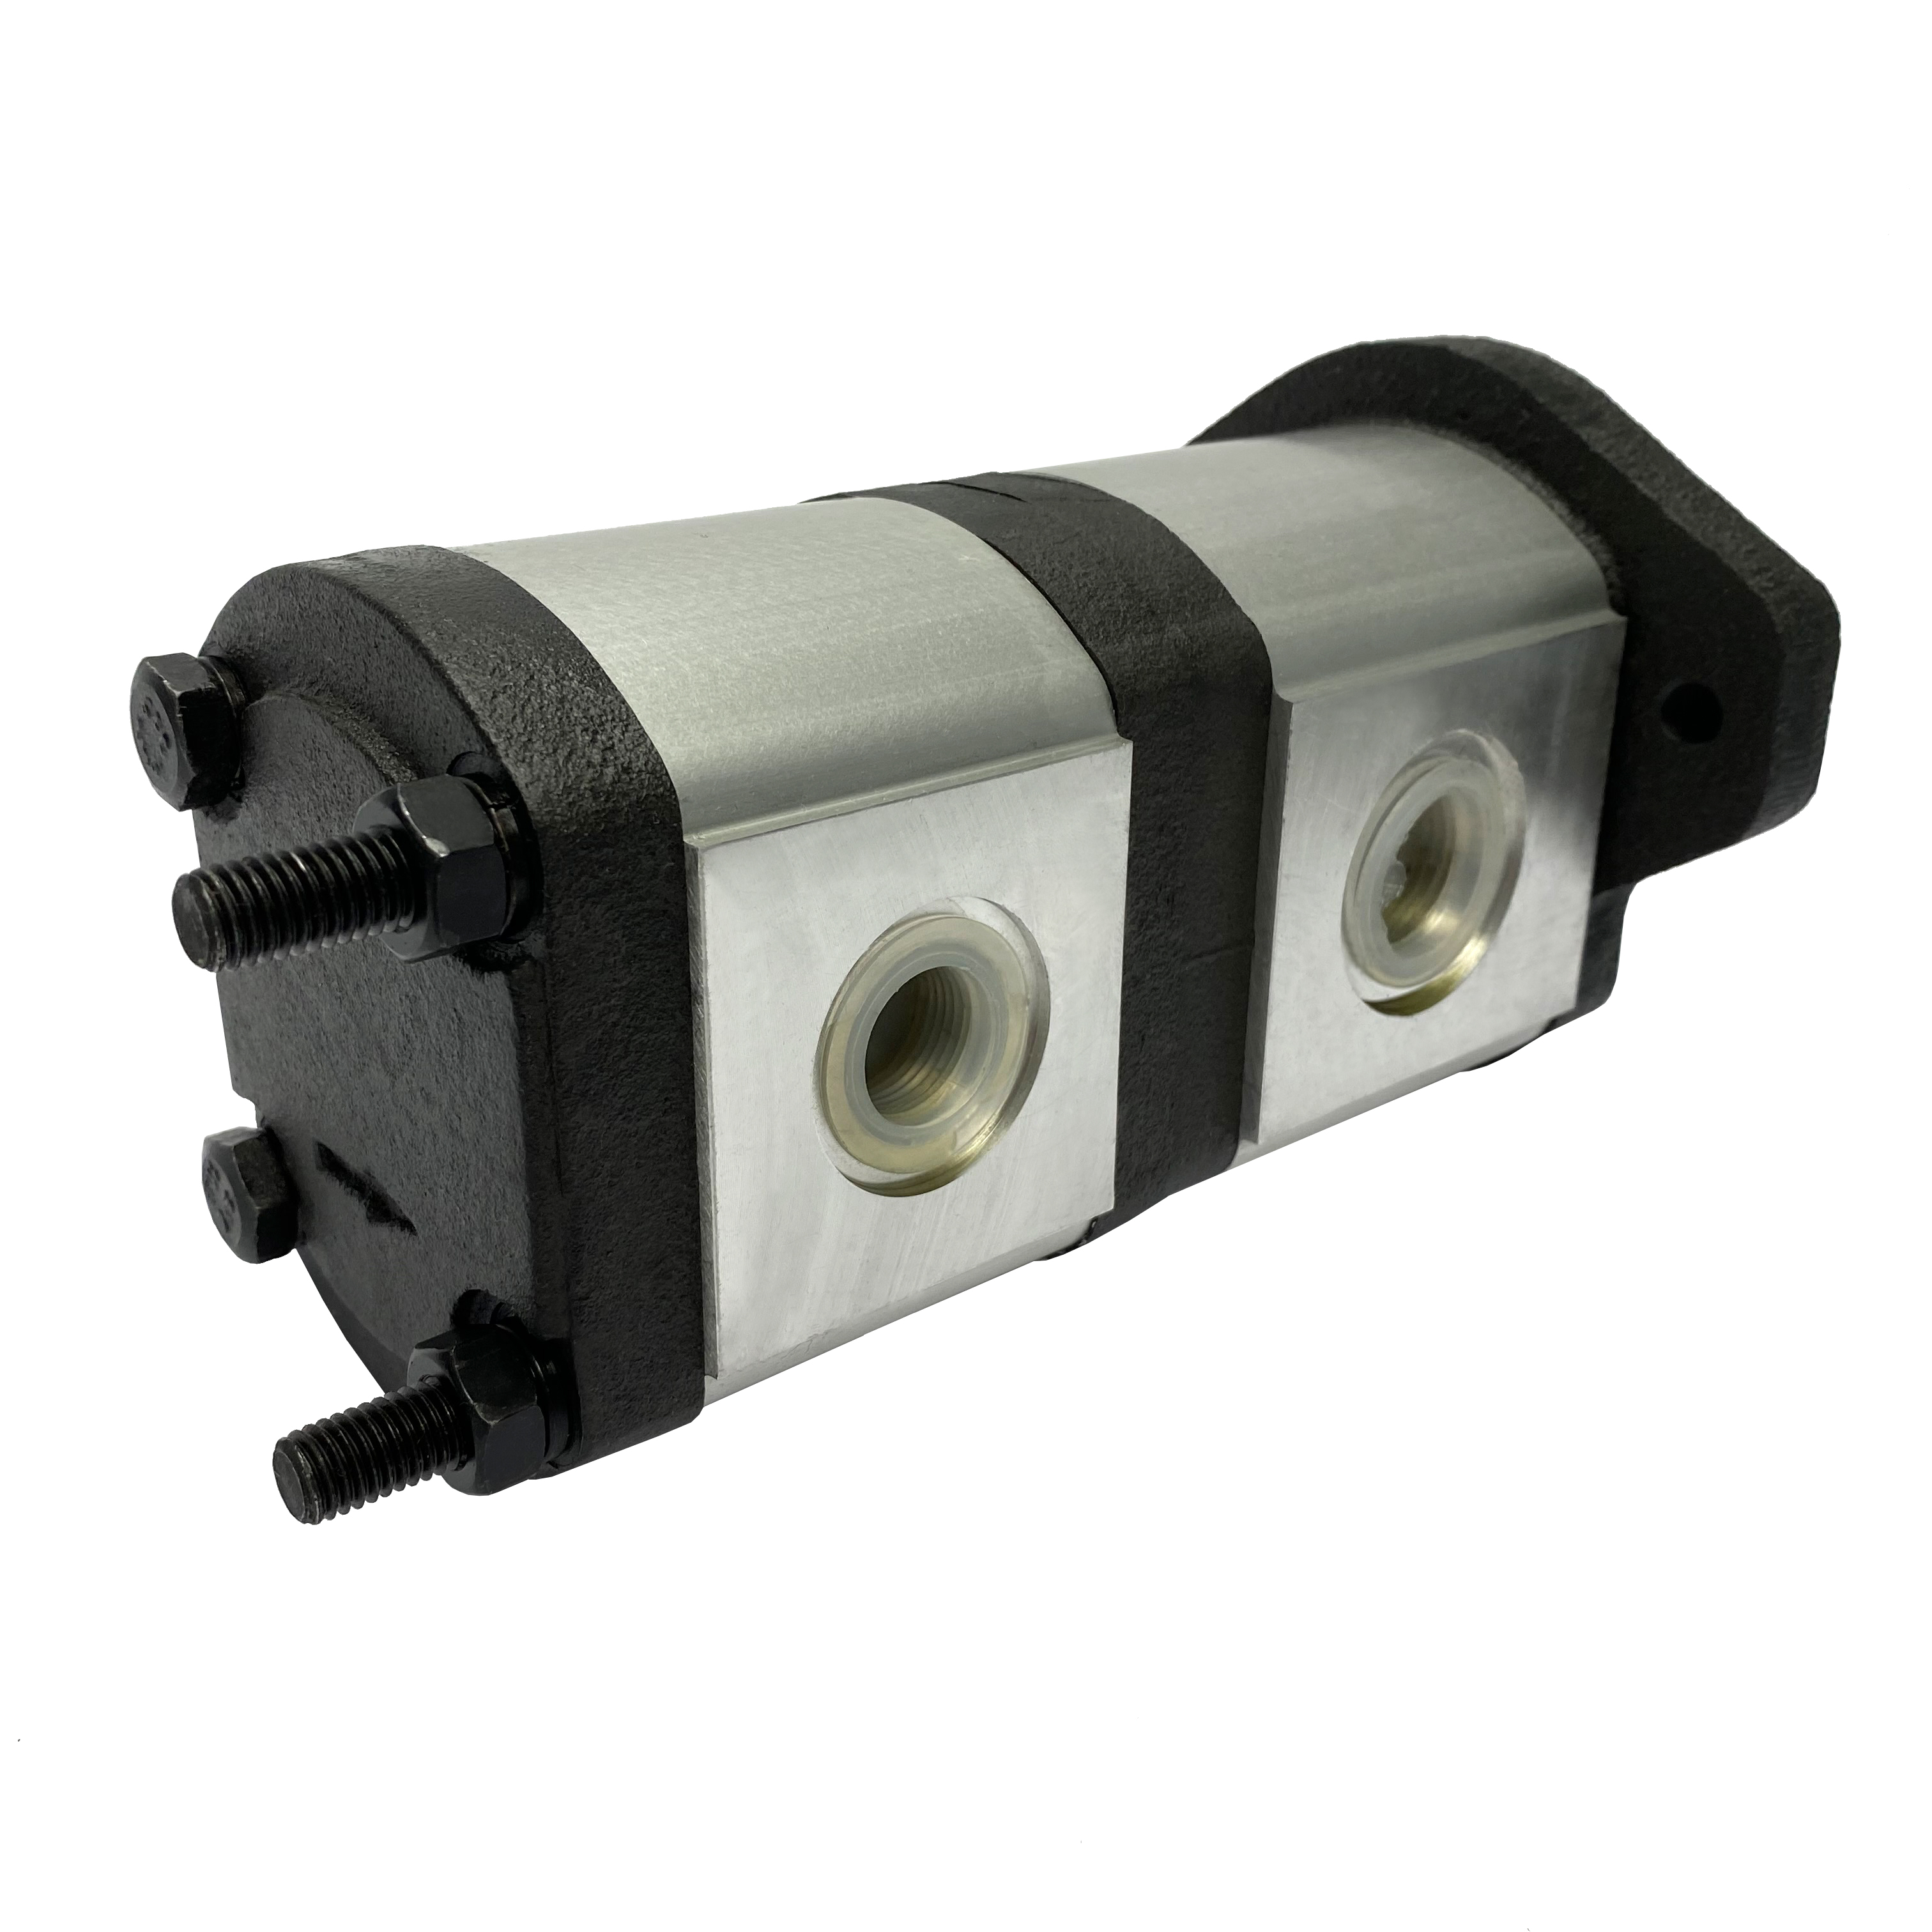 Hydraulic gear pump replacement for John Deere RE223233   Magister Hydraulics